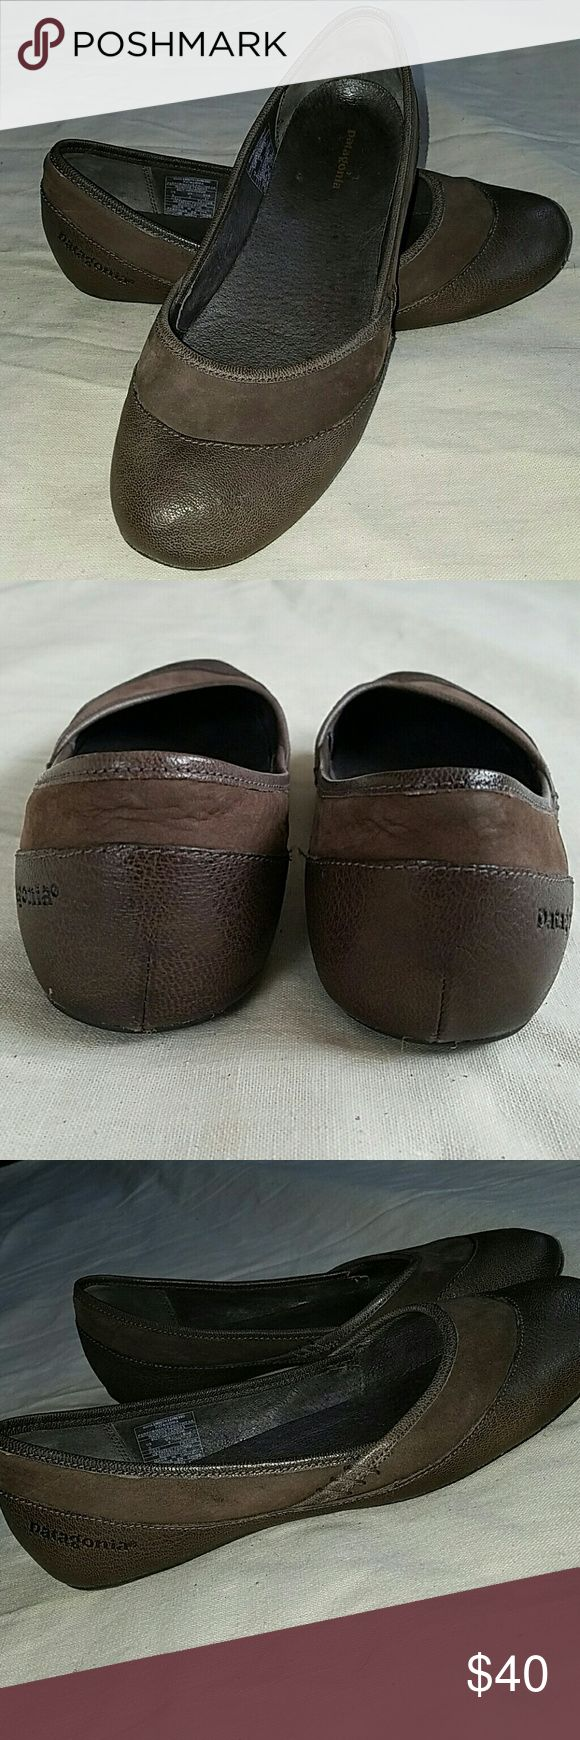 Patagonia Maha ballet flats Smooth espresso. Size 6. Very good condition. Patagonia Shoes Flats & Loafers